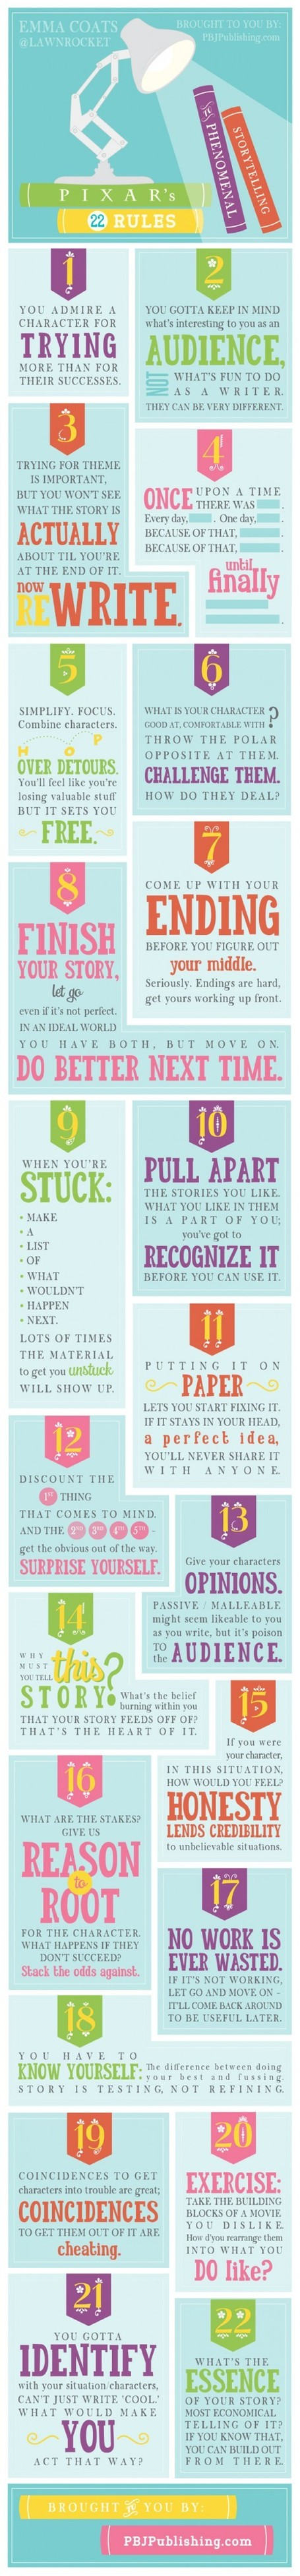 Pixar's 22 Rules to Phenomenal Storytelling [INFOGRAPHIC] | Wiki_Universe | Scoop.it